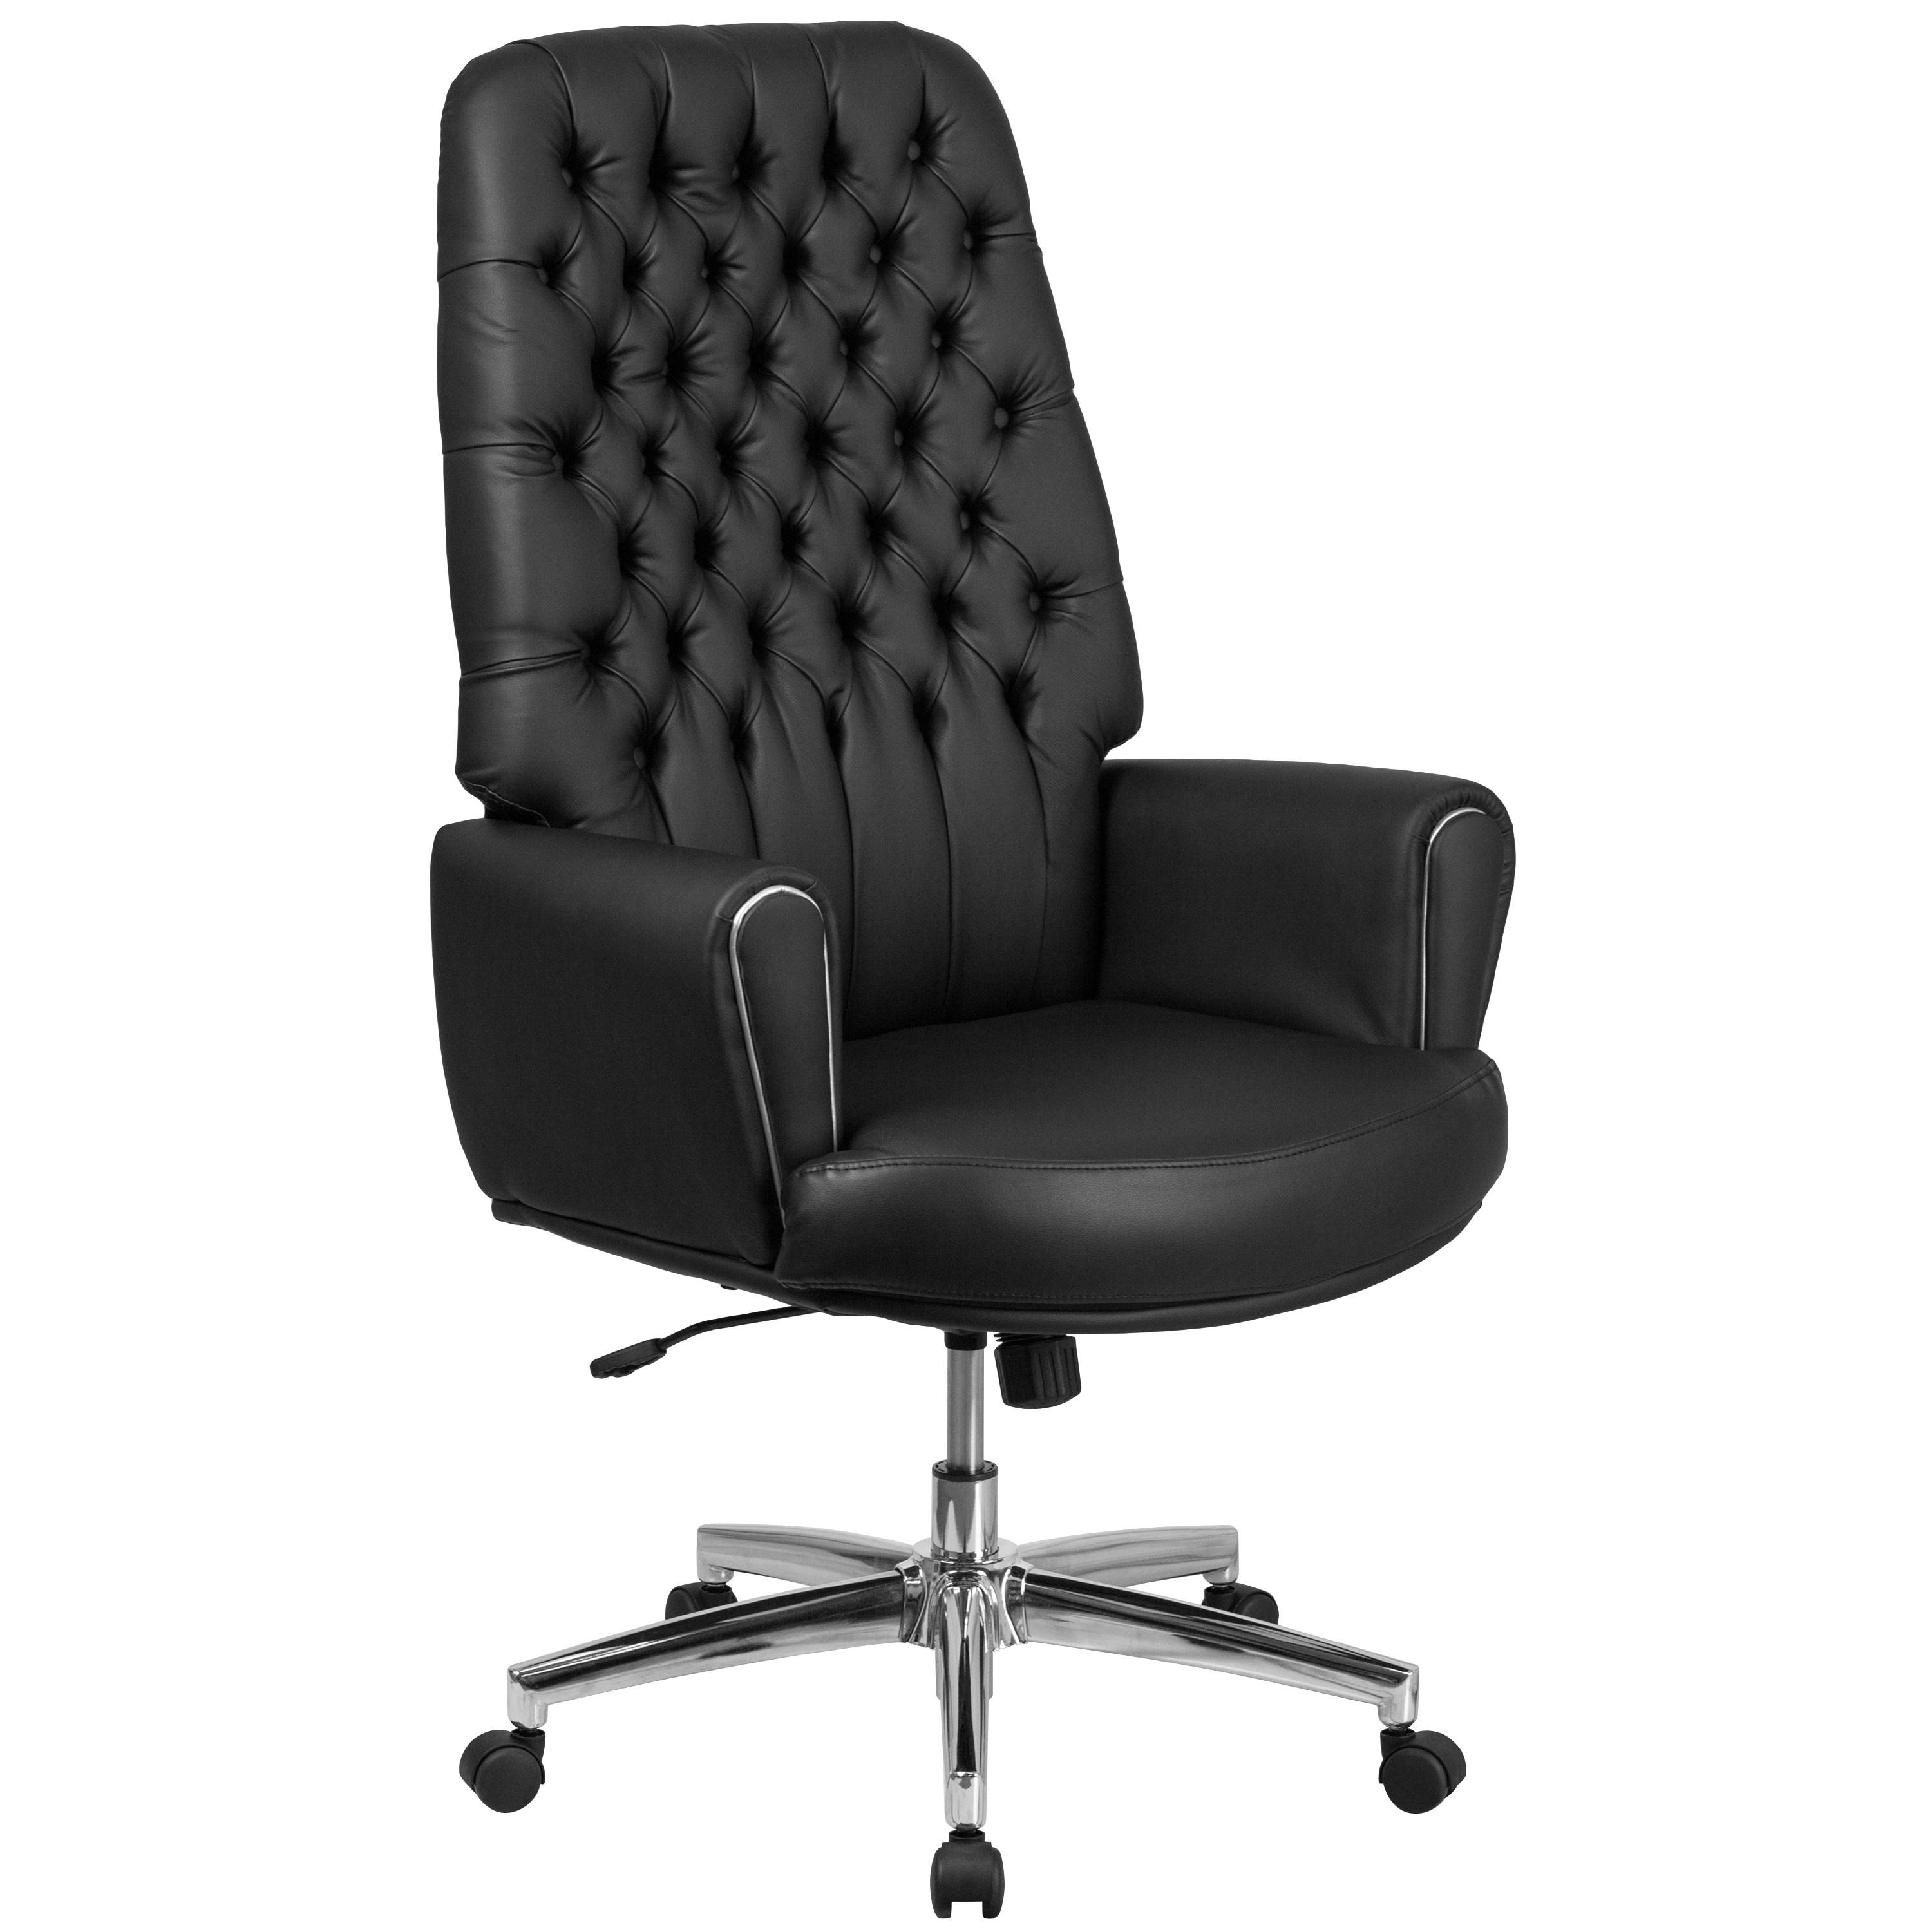 Lancaster Home High Back Traditional Tufted Bonded Leather Executive Swivel Chair with Arms